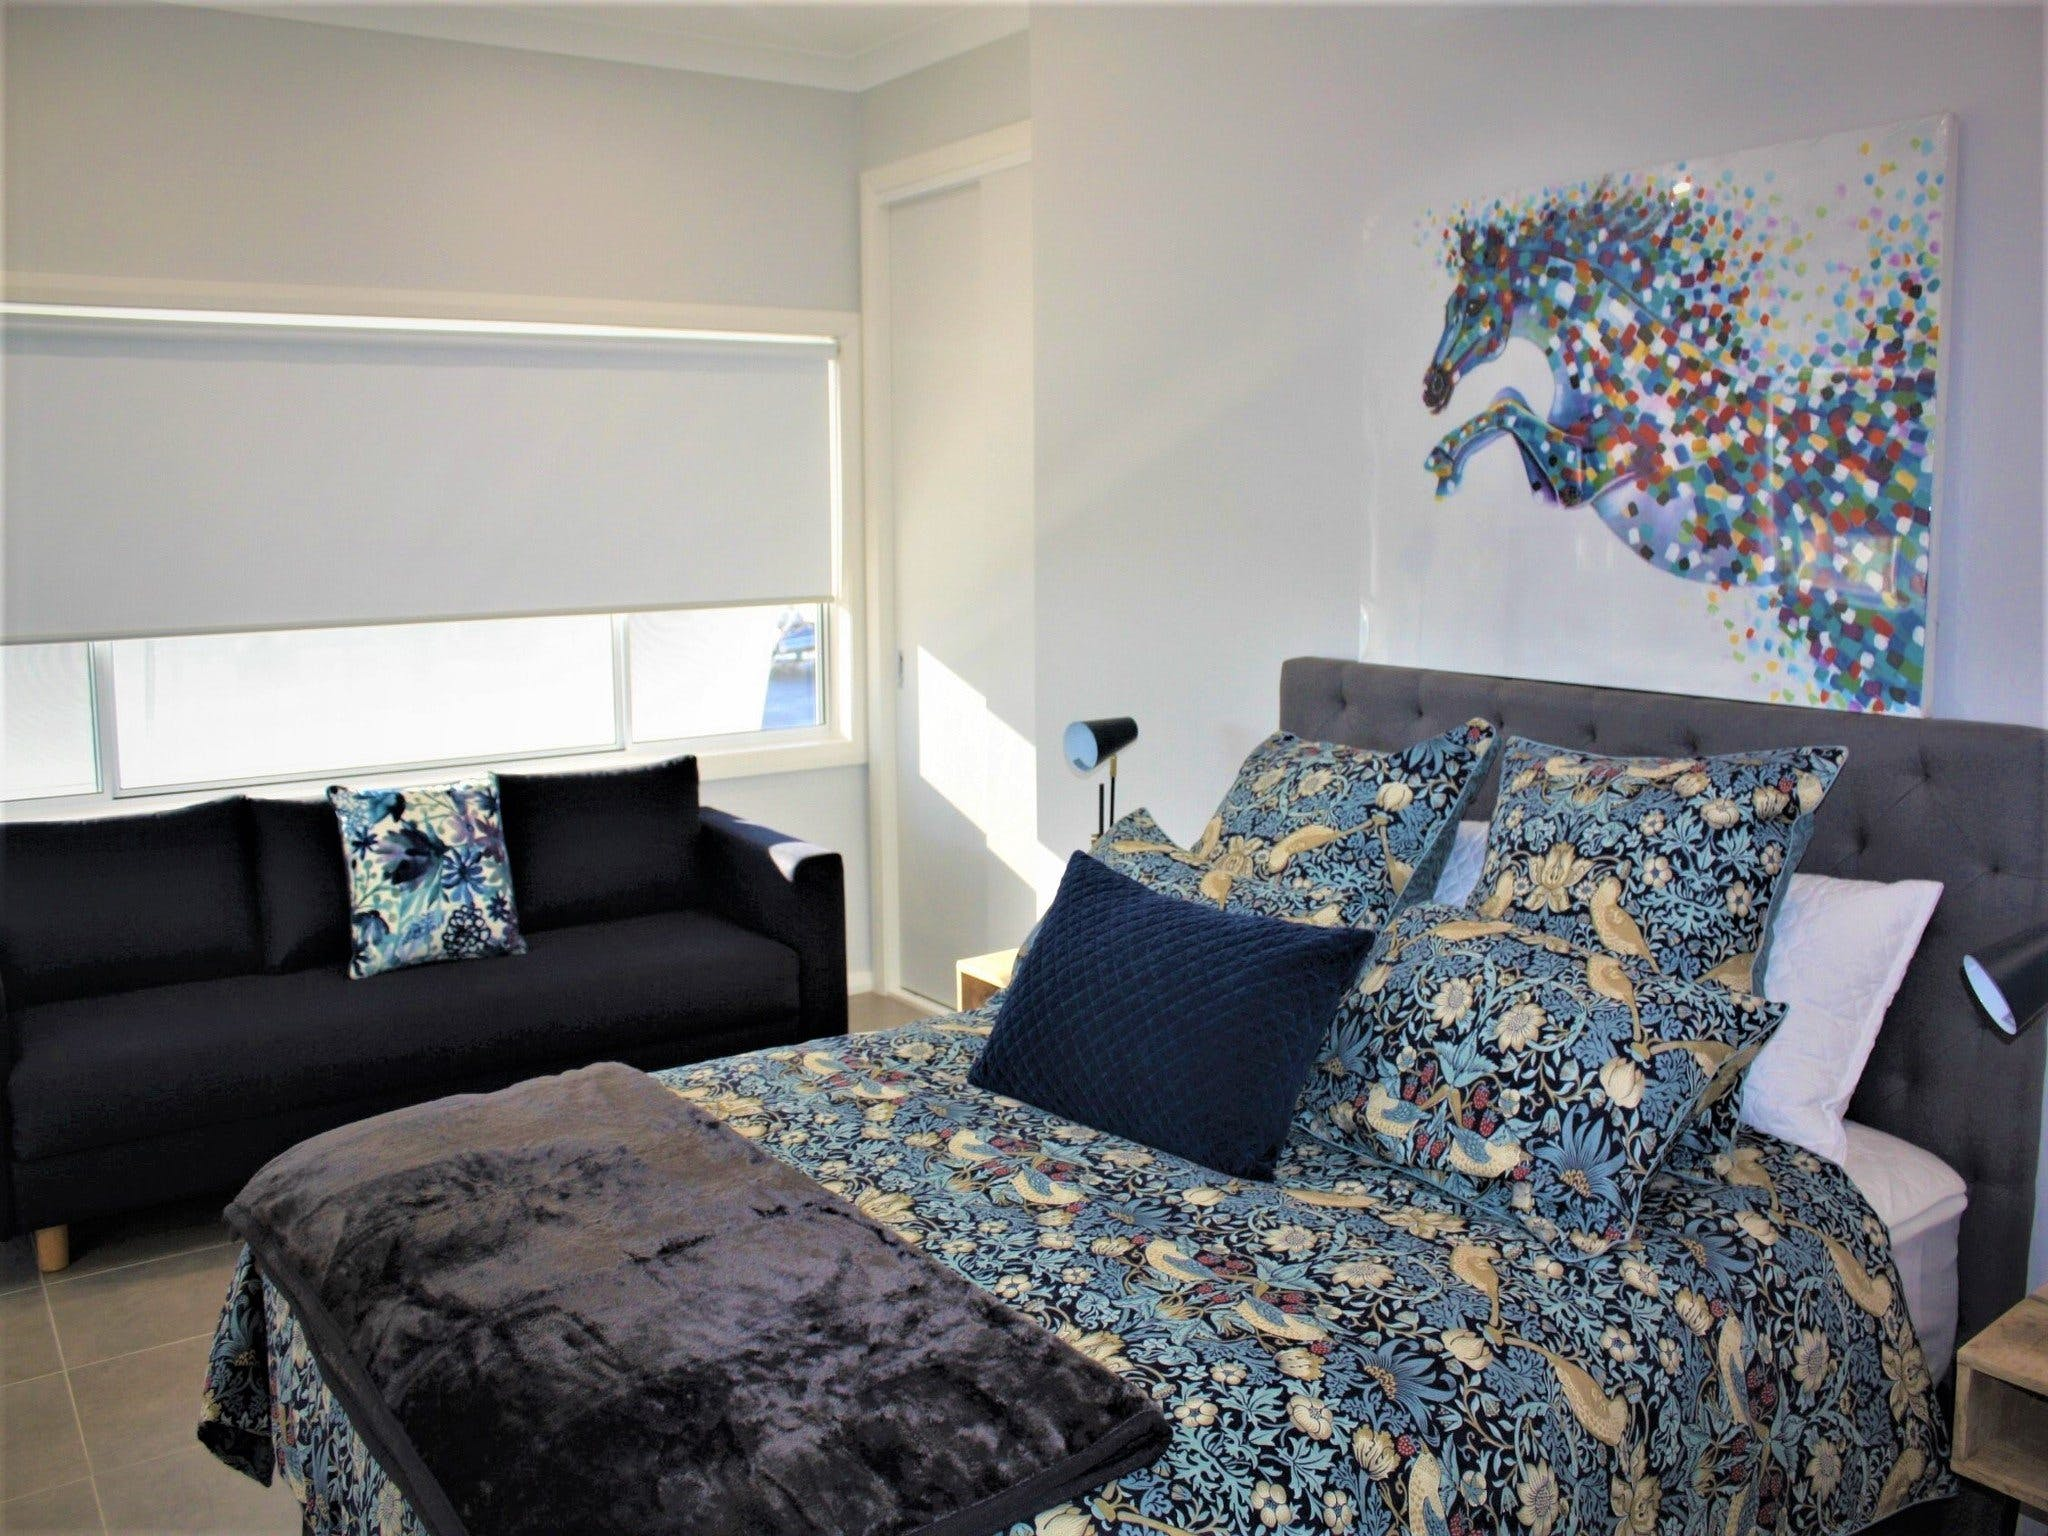 Coolah Shorts - Self Contained Apartments - Townsville Tourism